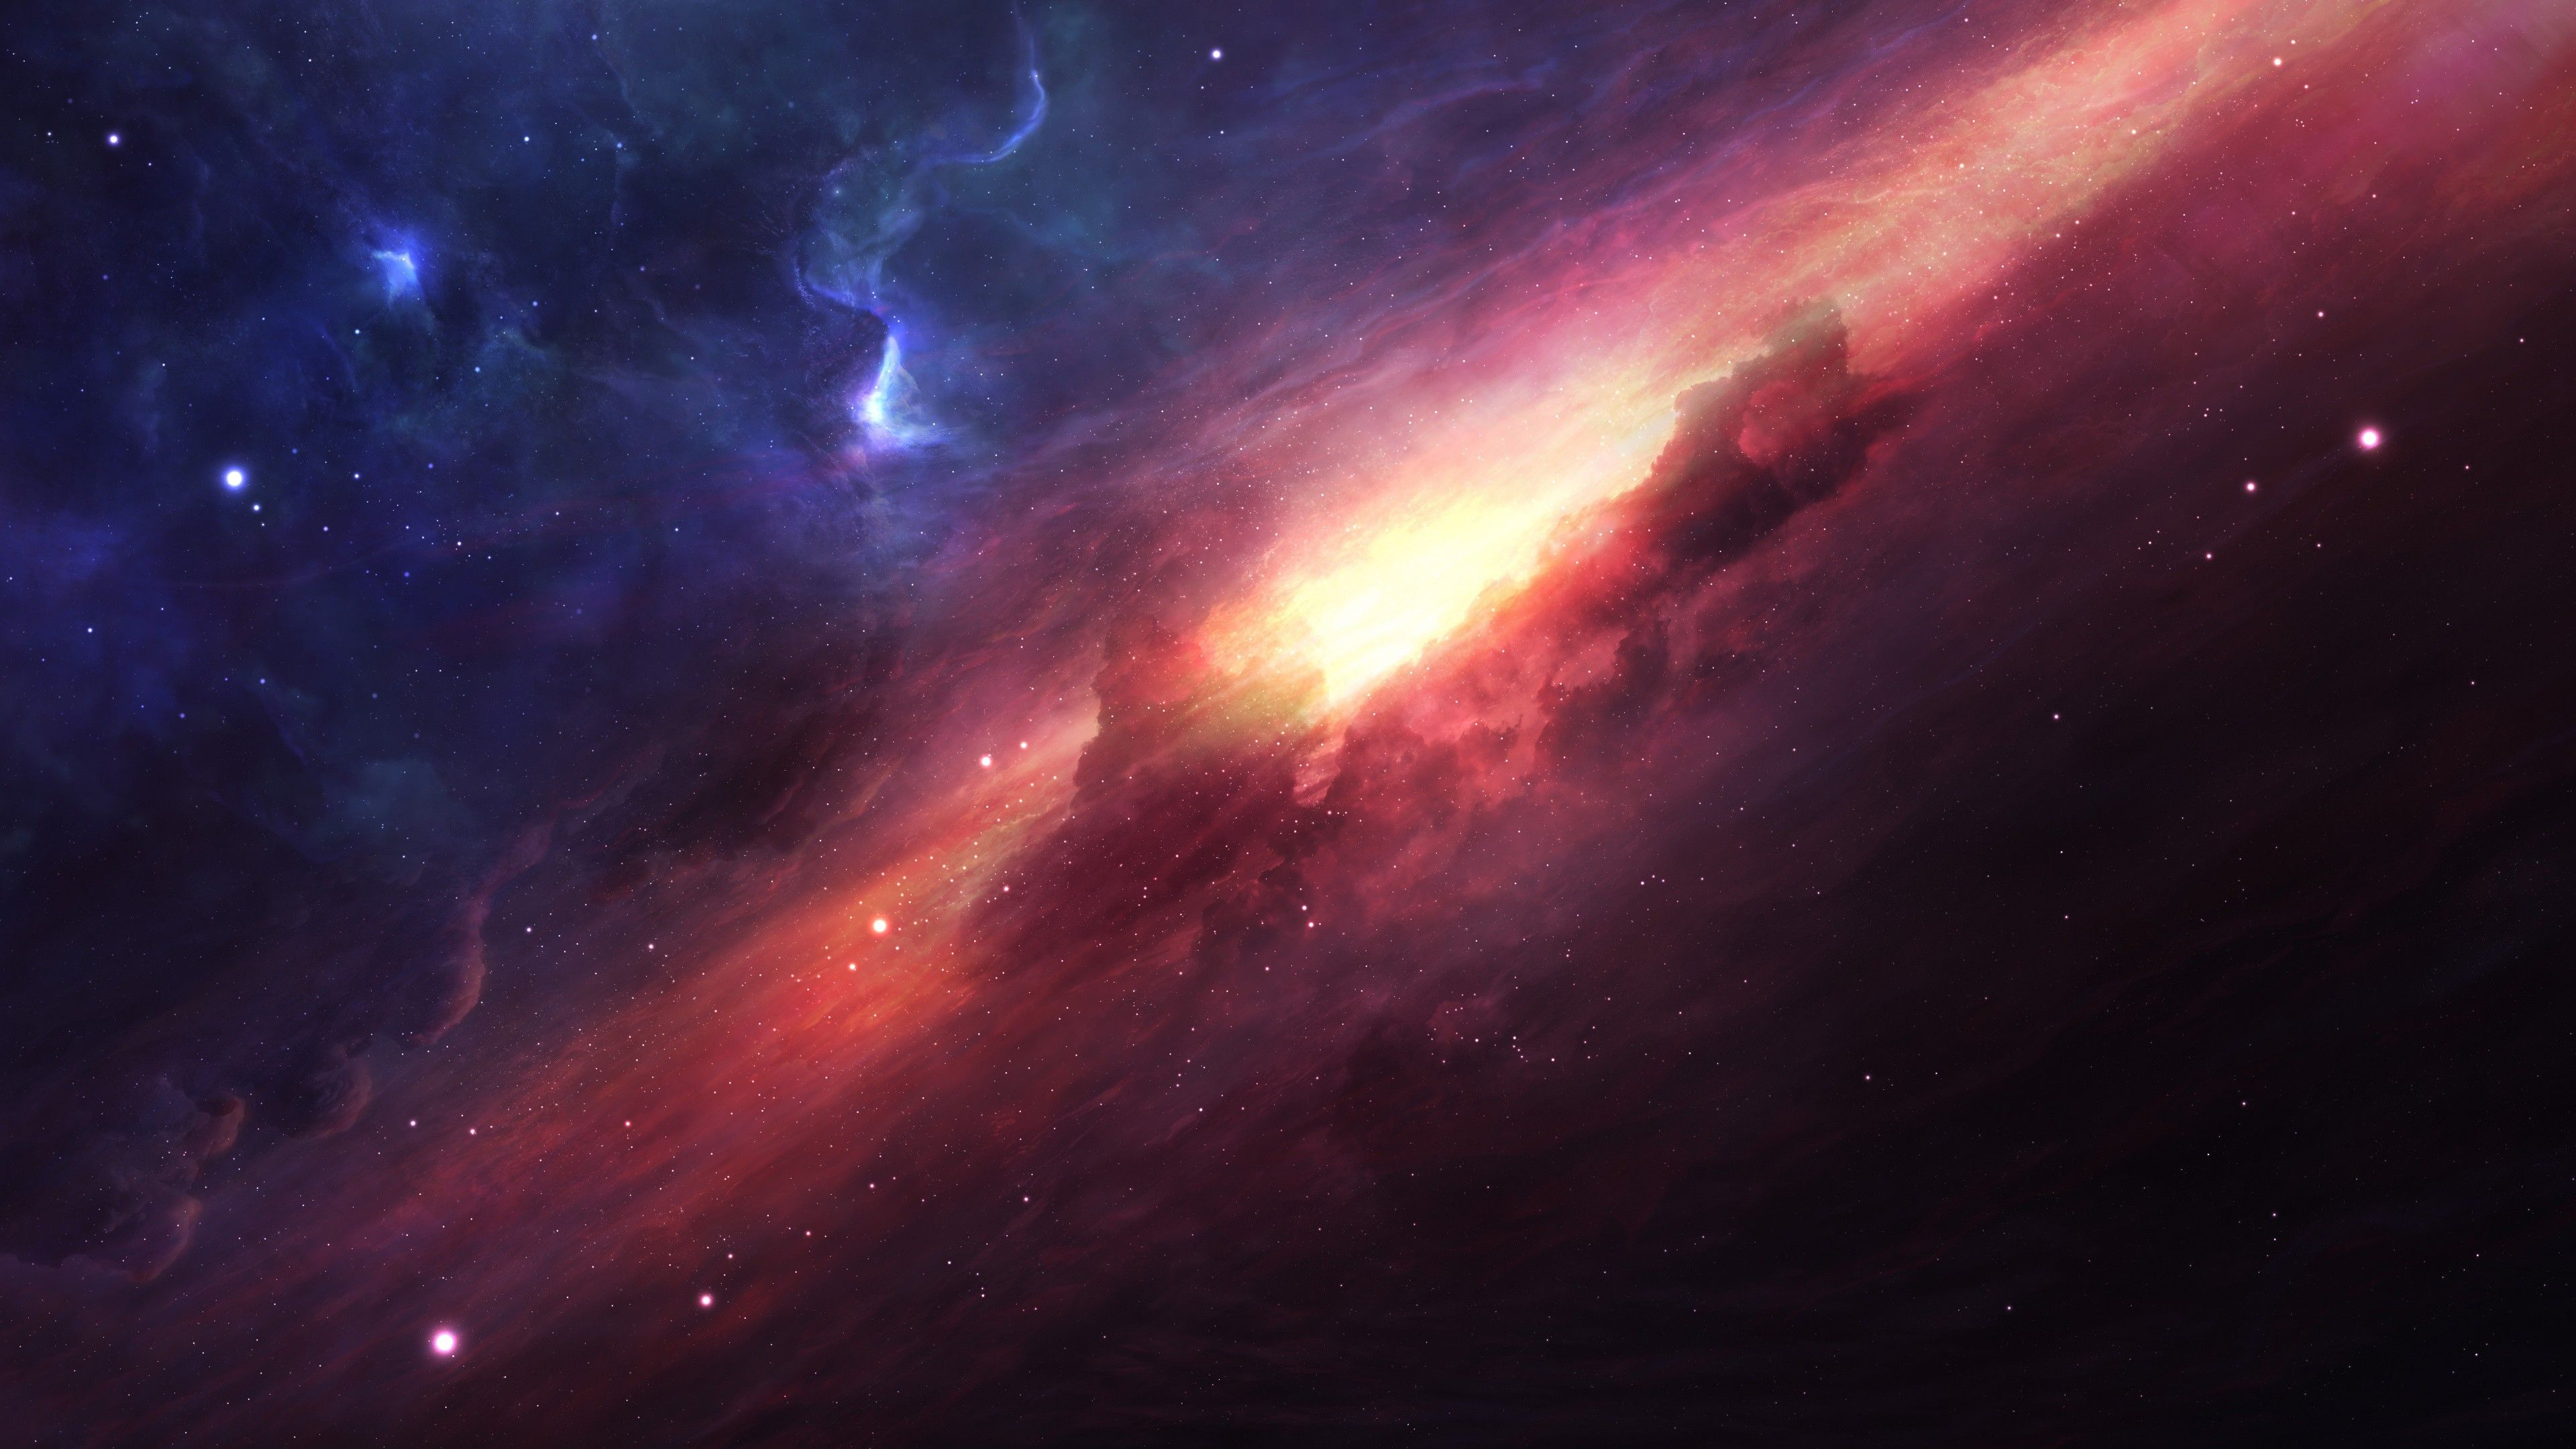 Space Art 4k Space Wallpapers Hd Wallpapers Digital Universe Wallpapers Artwork Wallpapers Artist Wall Wallpaper Space Galaxy Wallpaper Hd Galaxy Wallpaper